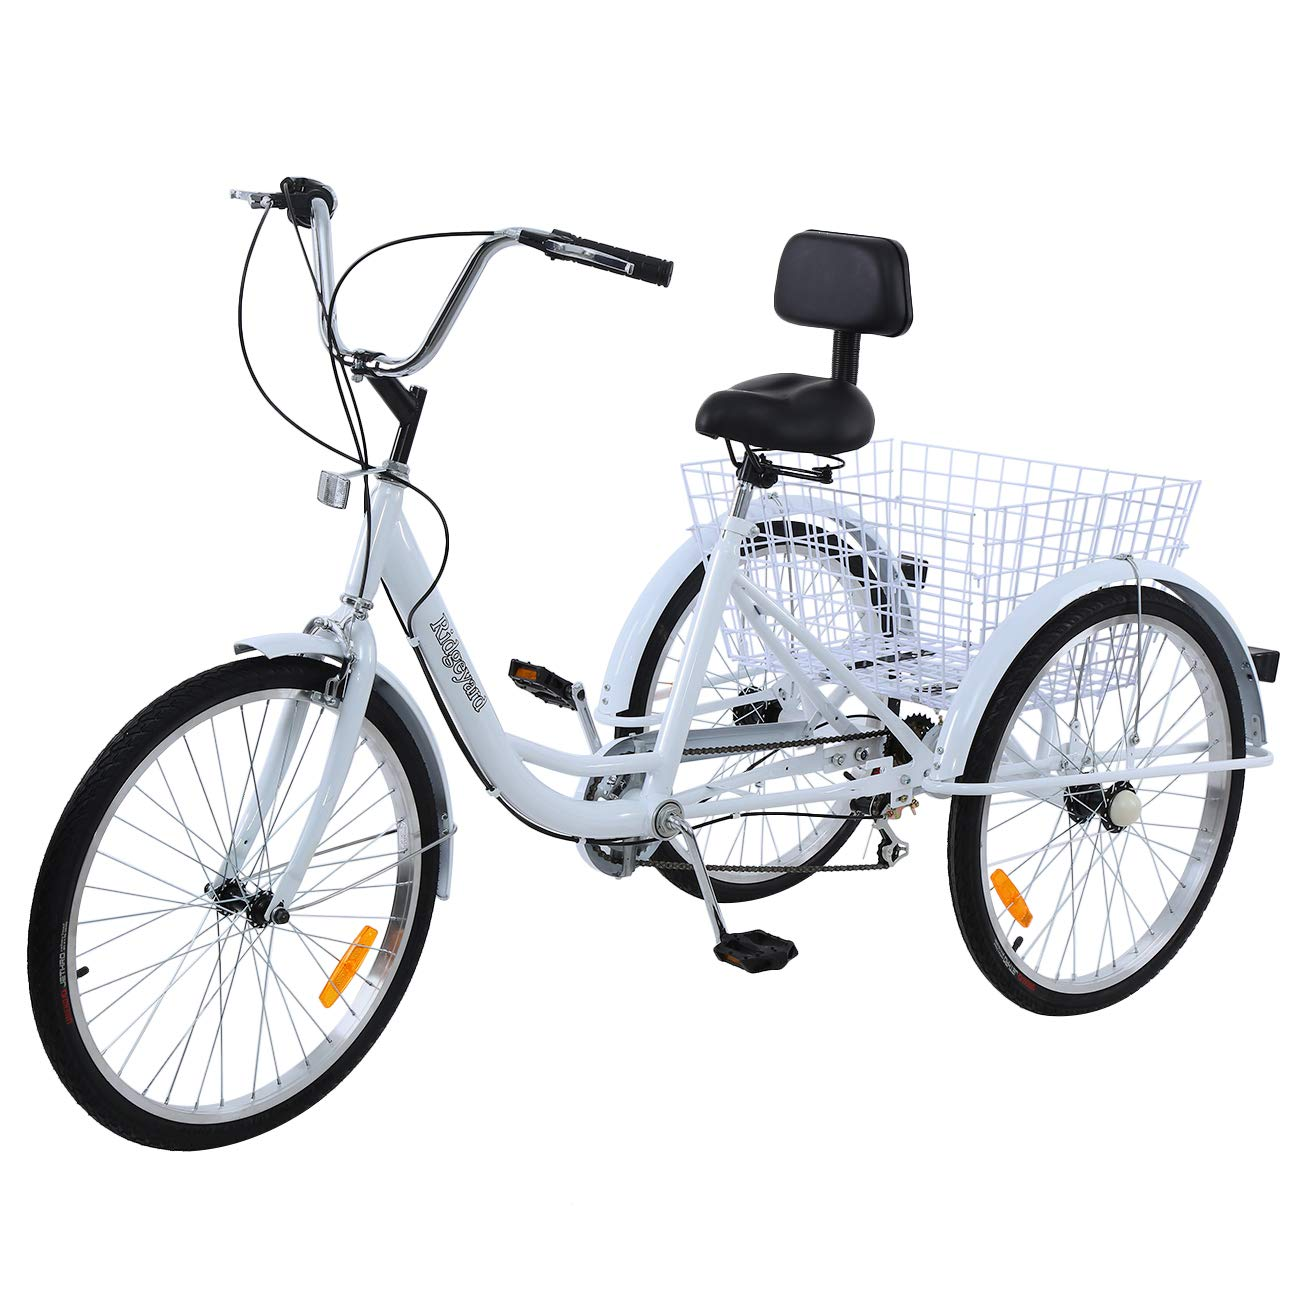 24/'/' 3 Wheel Adult Tricycle Basket Trike Cruise 300LBS 7 speed